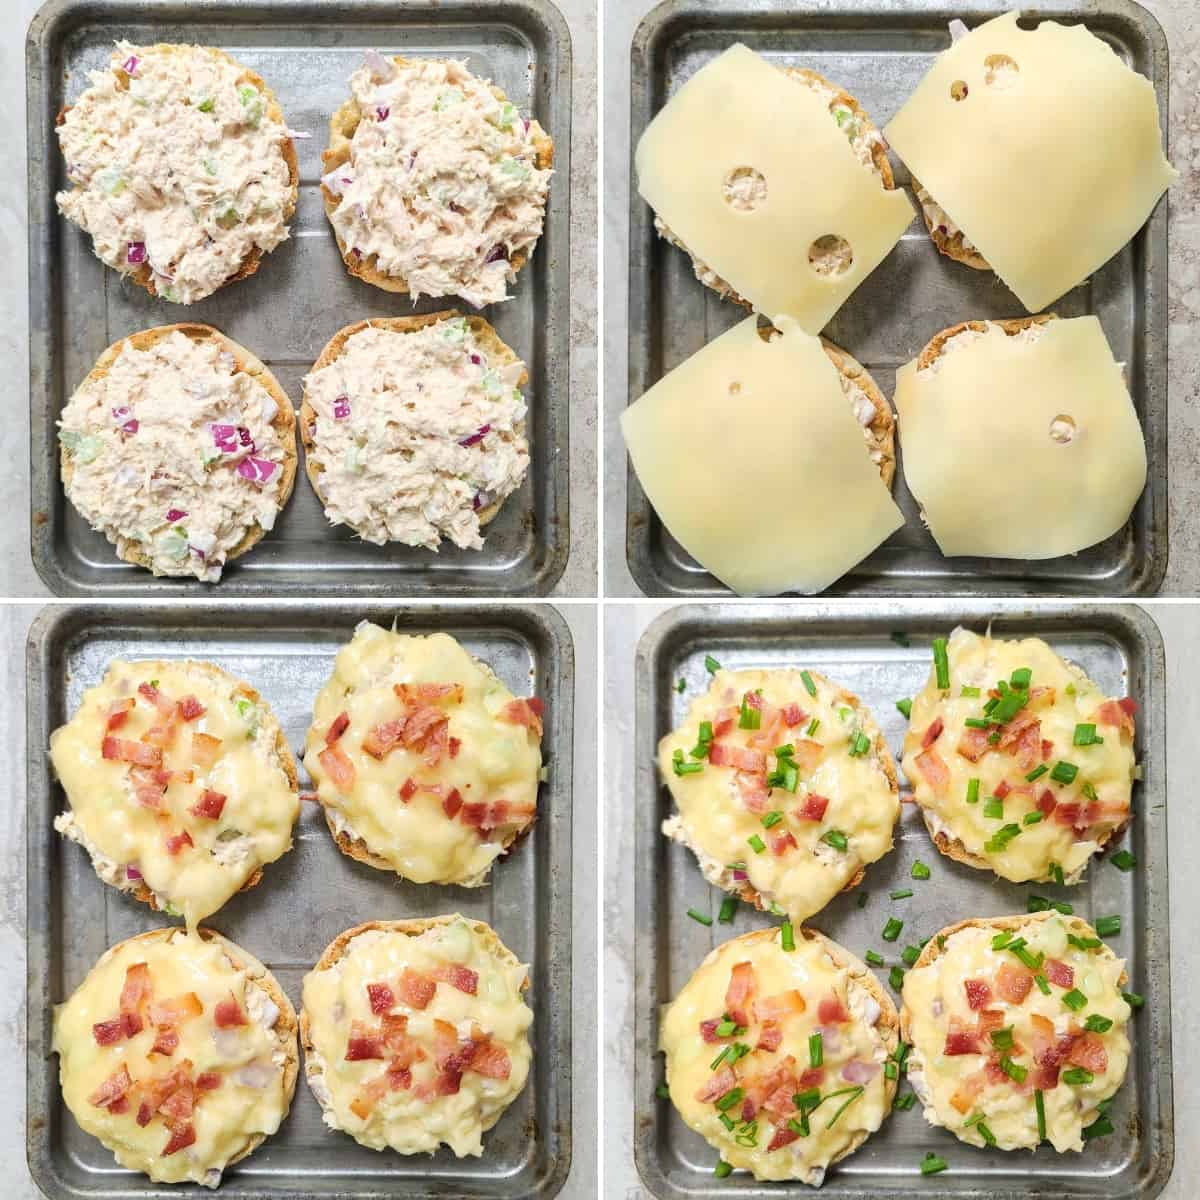 collage of 4 photos showing assembly of recipe: tuna salad on 4 halves of English muffins; topped with cheese; topped with bacon; topped with chives